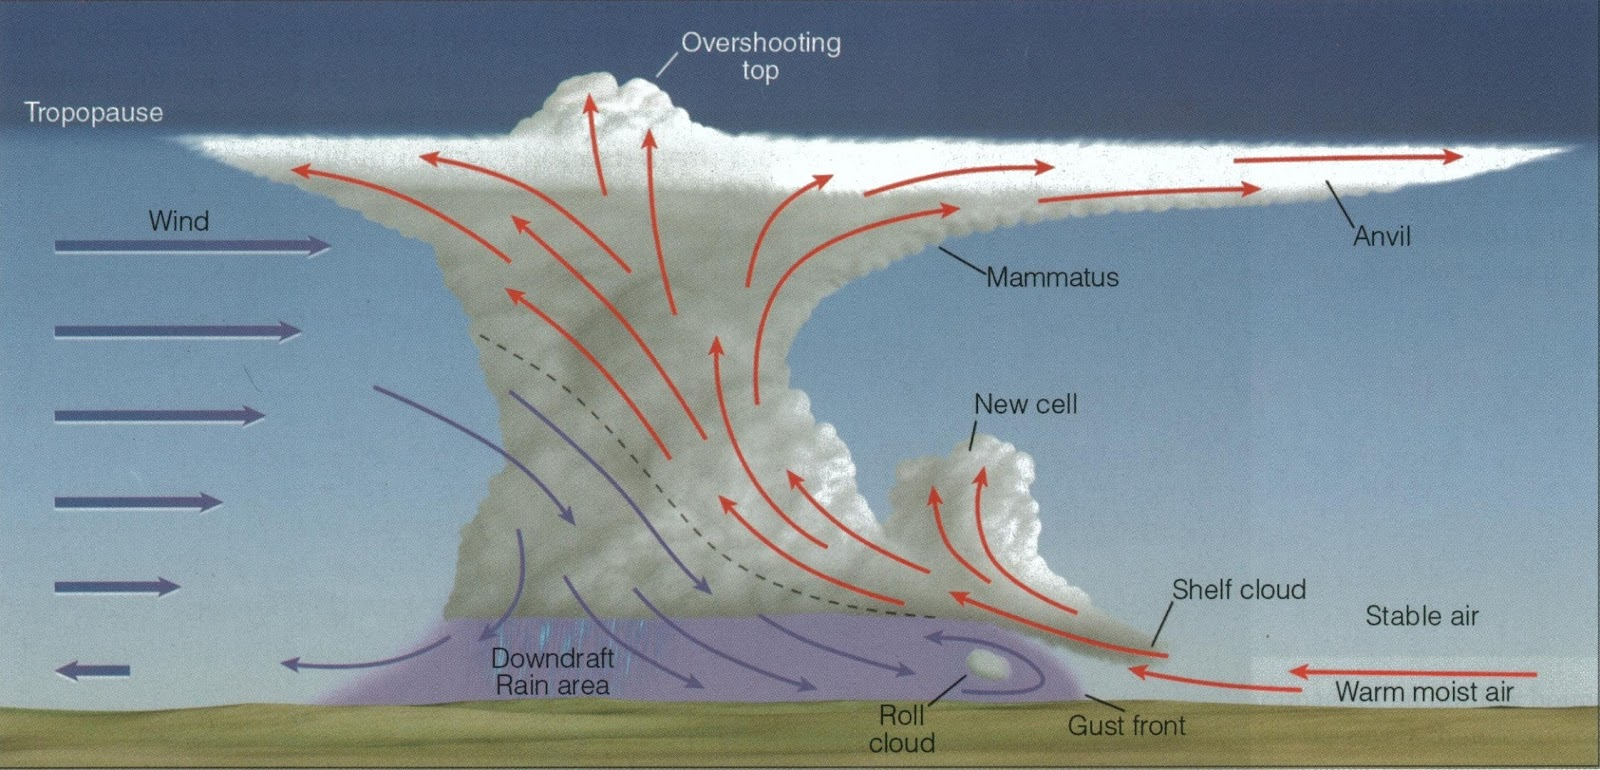 Diagram of a typical thunderstorm. Retrieved from gotoknow.org.